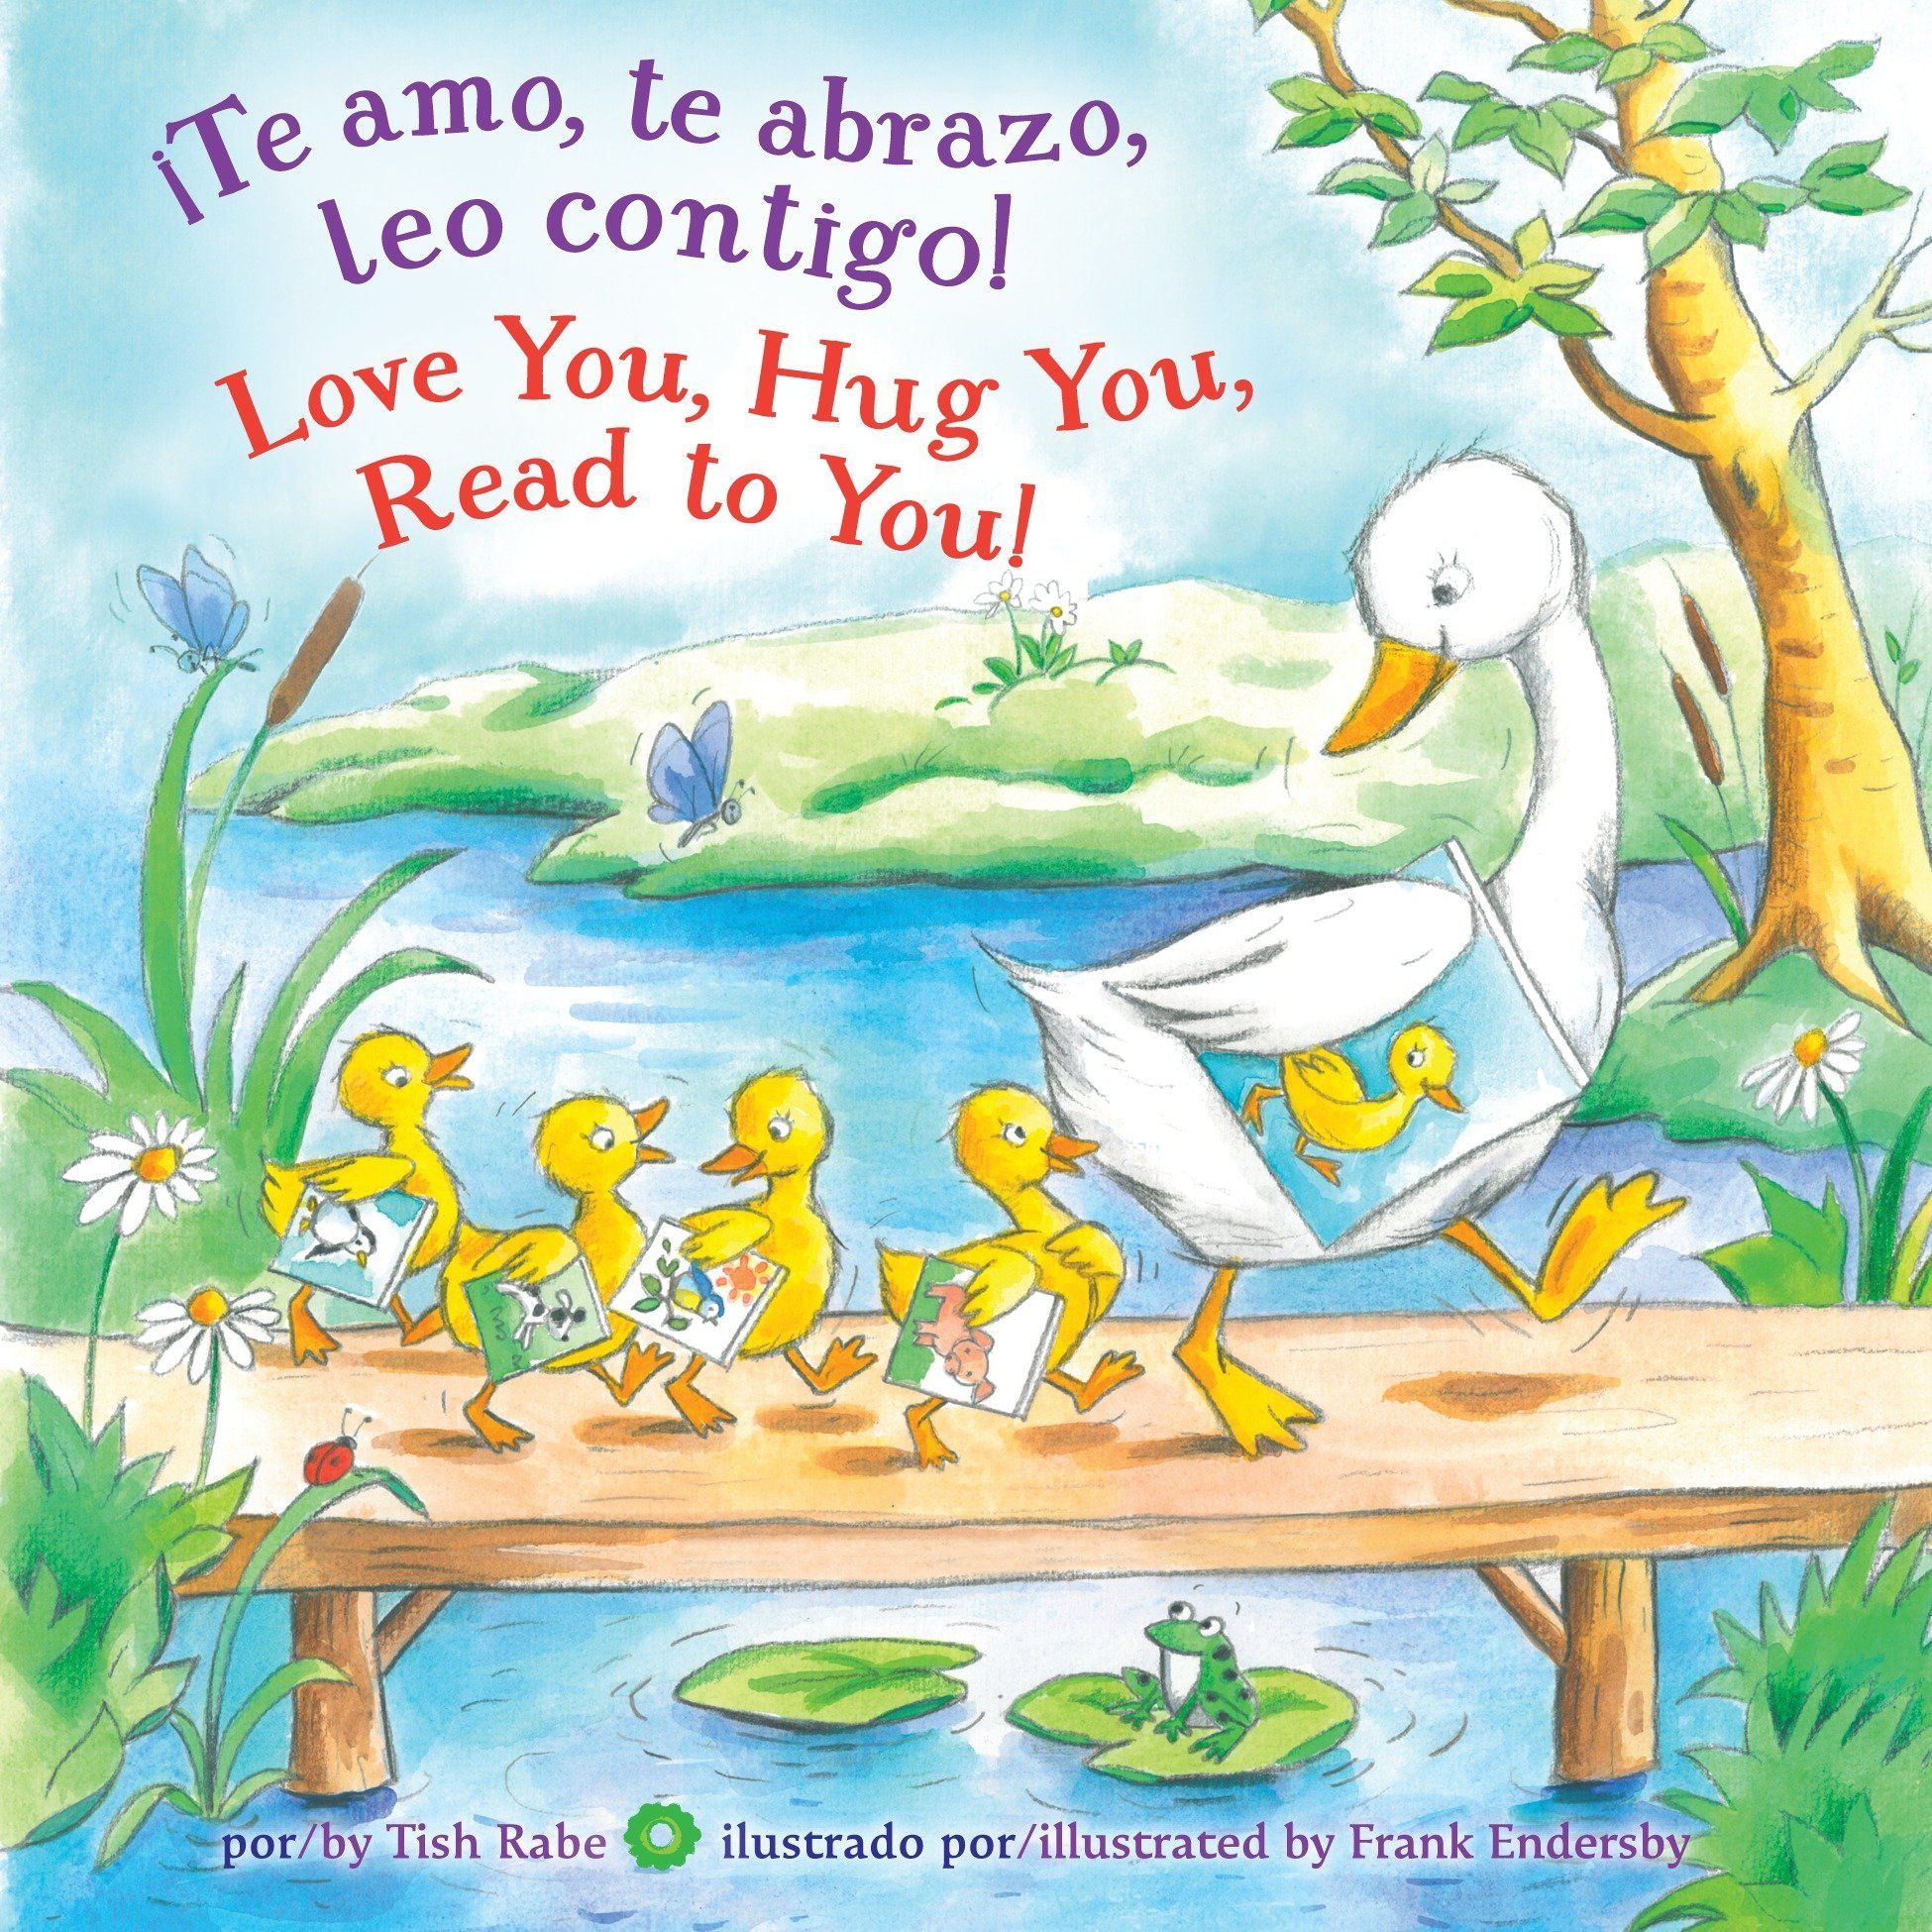 Love you, Hug You, Read to You! (Spanish Edition): Tish Rabe, Frank  Endersby: 9781101936573: Amazon.com: Books